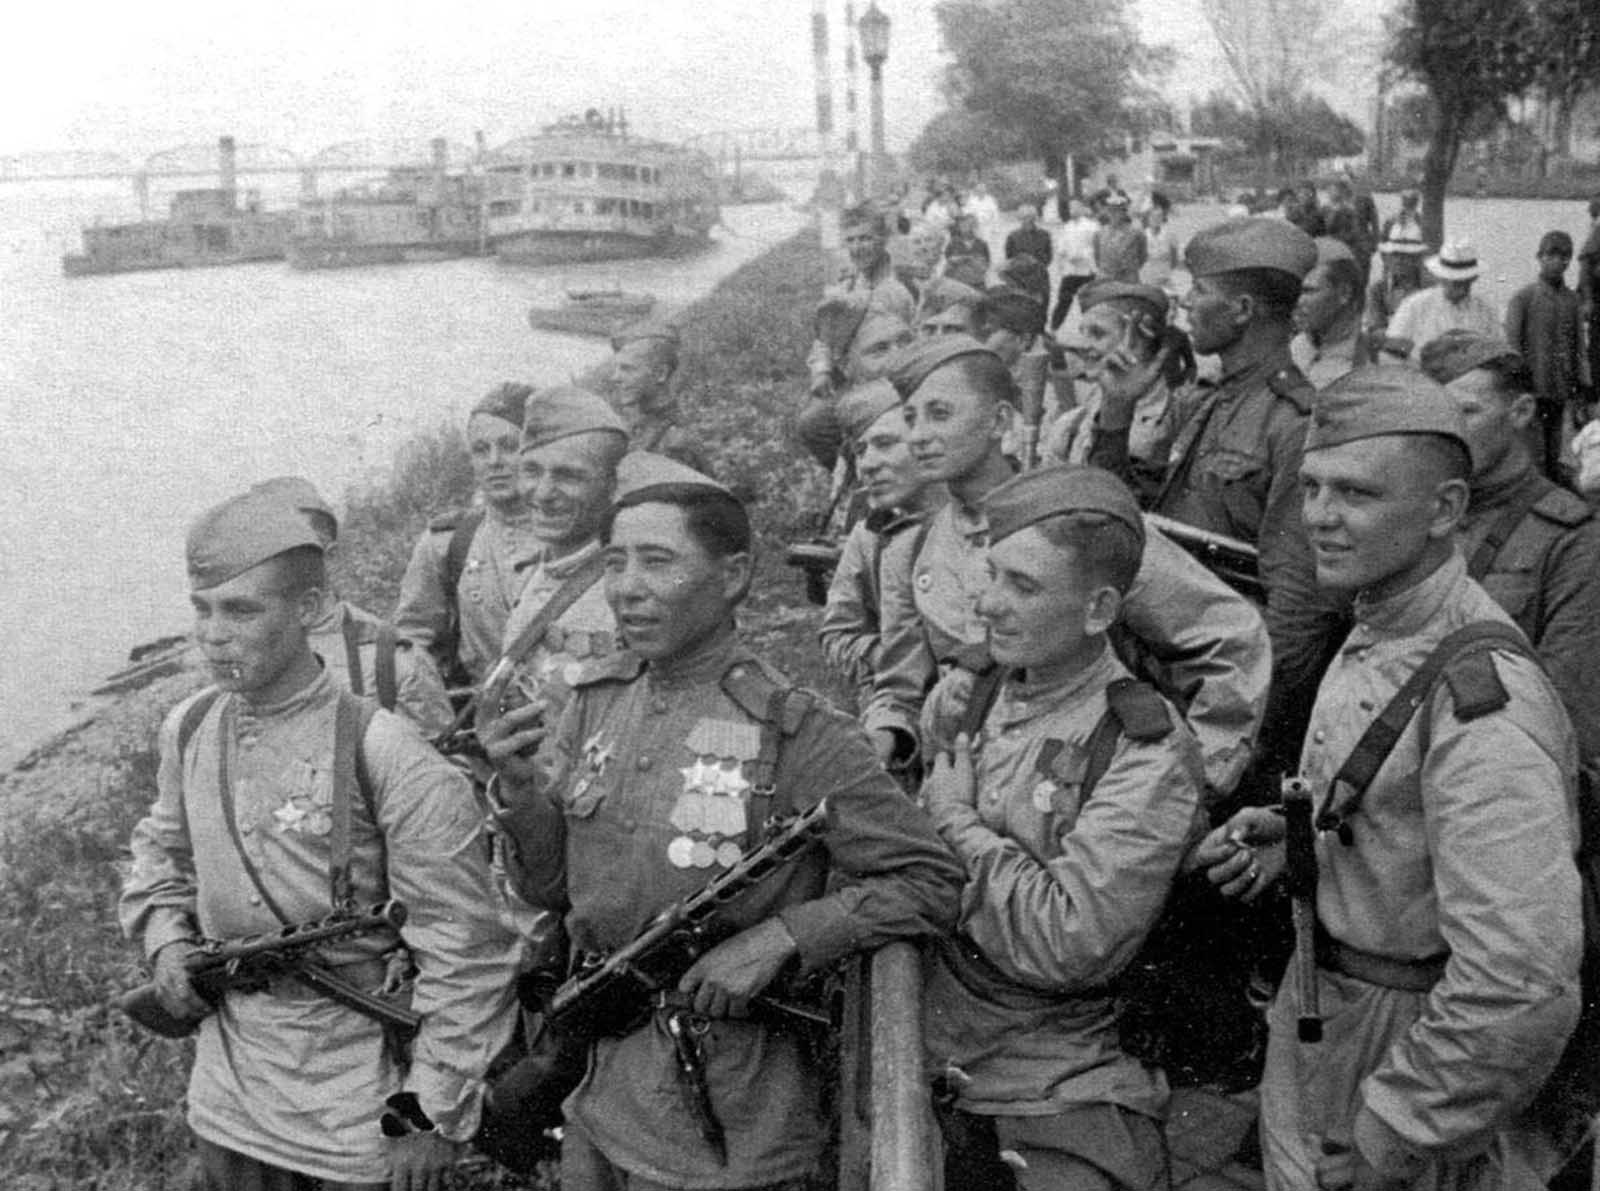 Soviet soldiers on the bank of the Songhua River in Harbin. The Japanese-occupied city was liberated by Soviet troops on August 20, 1945. Some 700,000 Soviet troops occupied Manchuria by the time Japan surrendered.